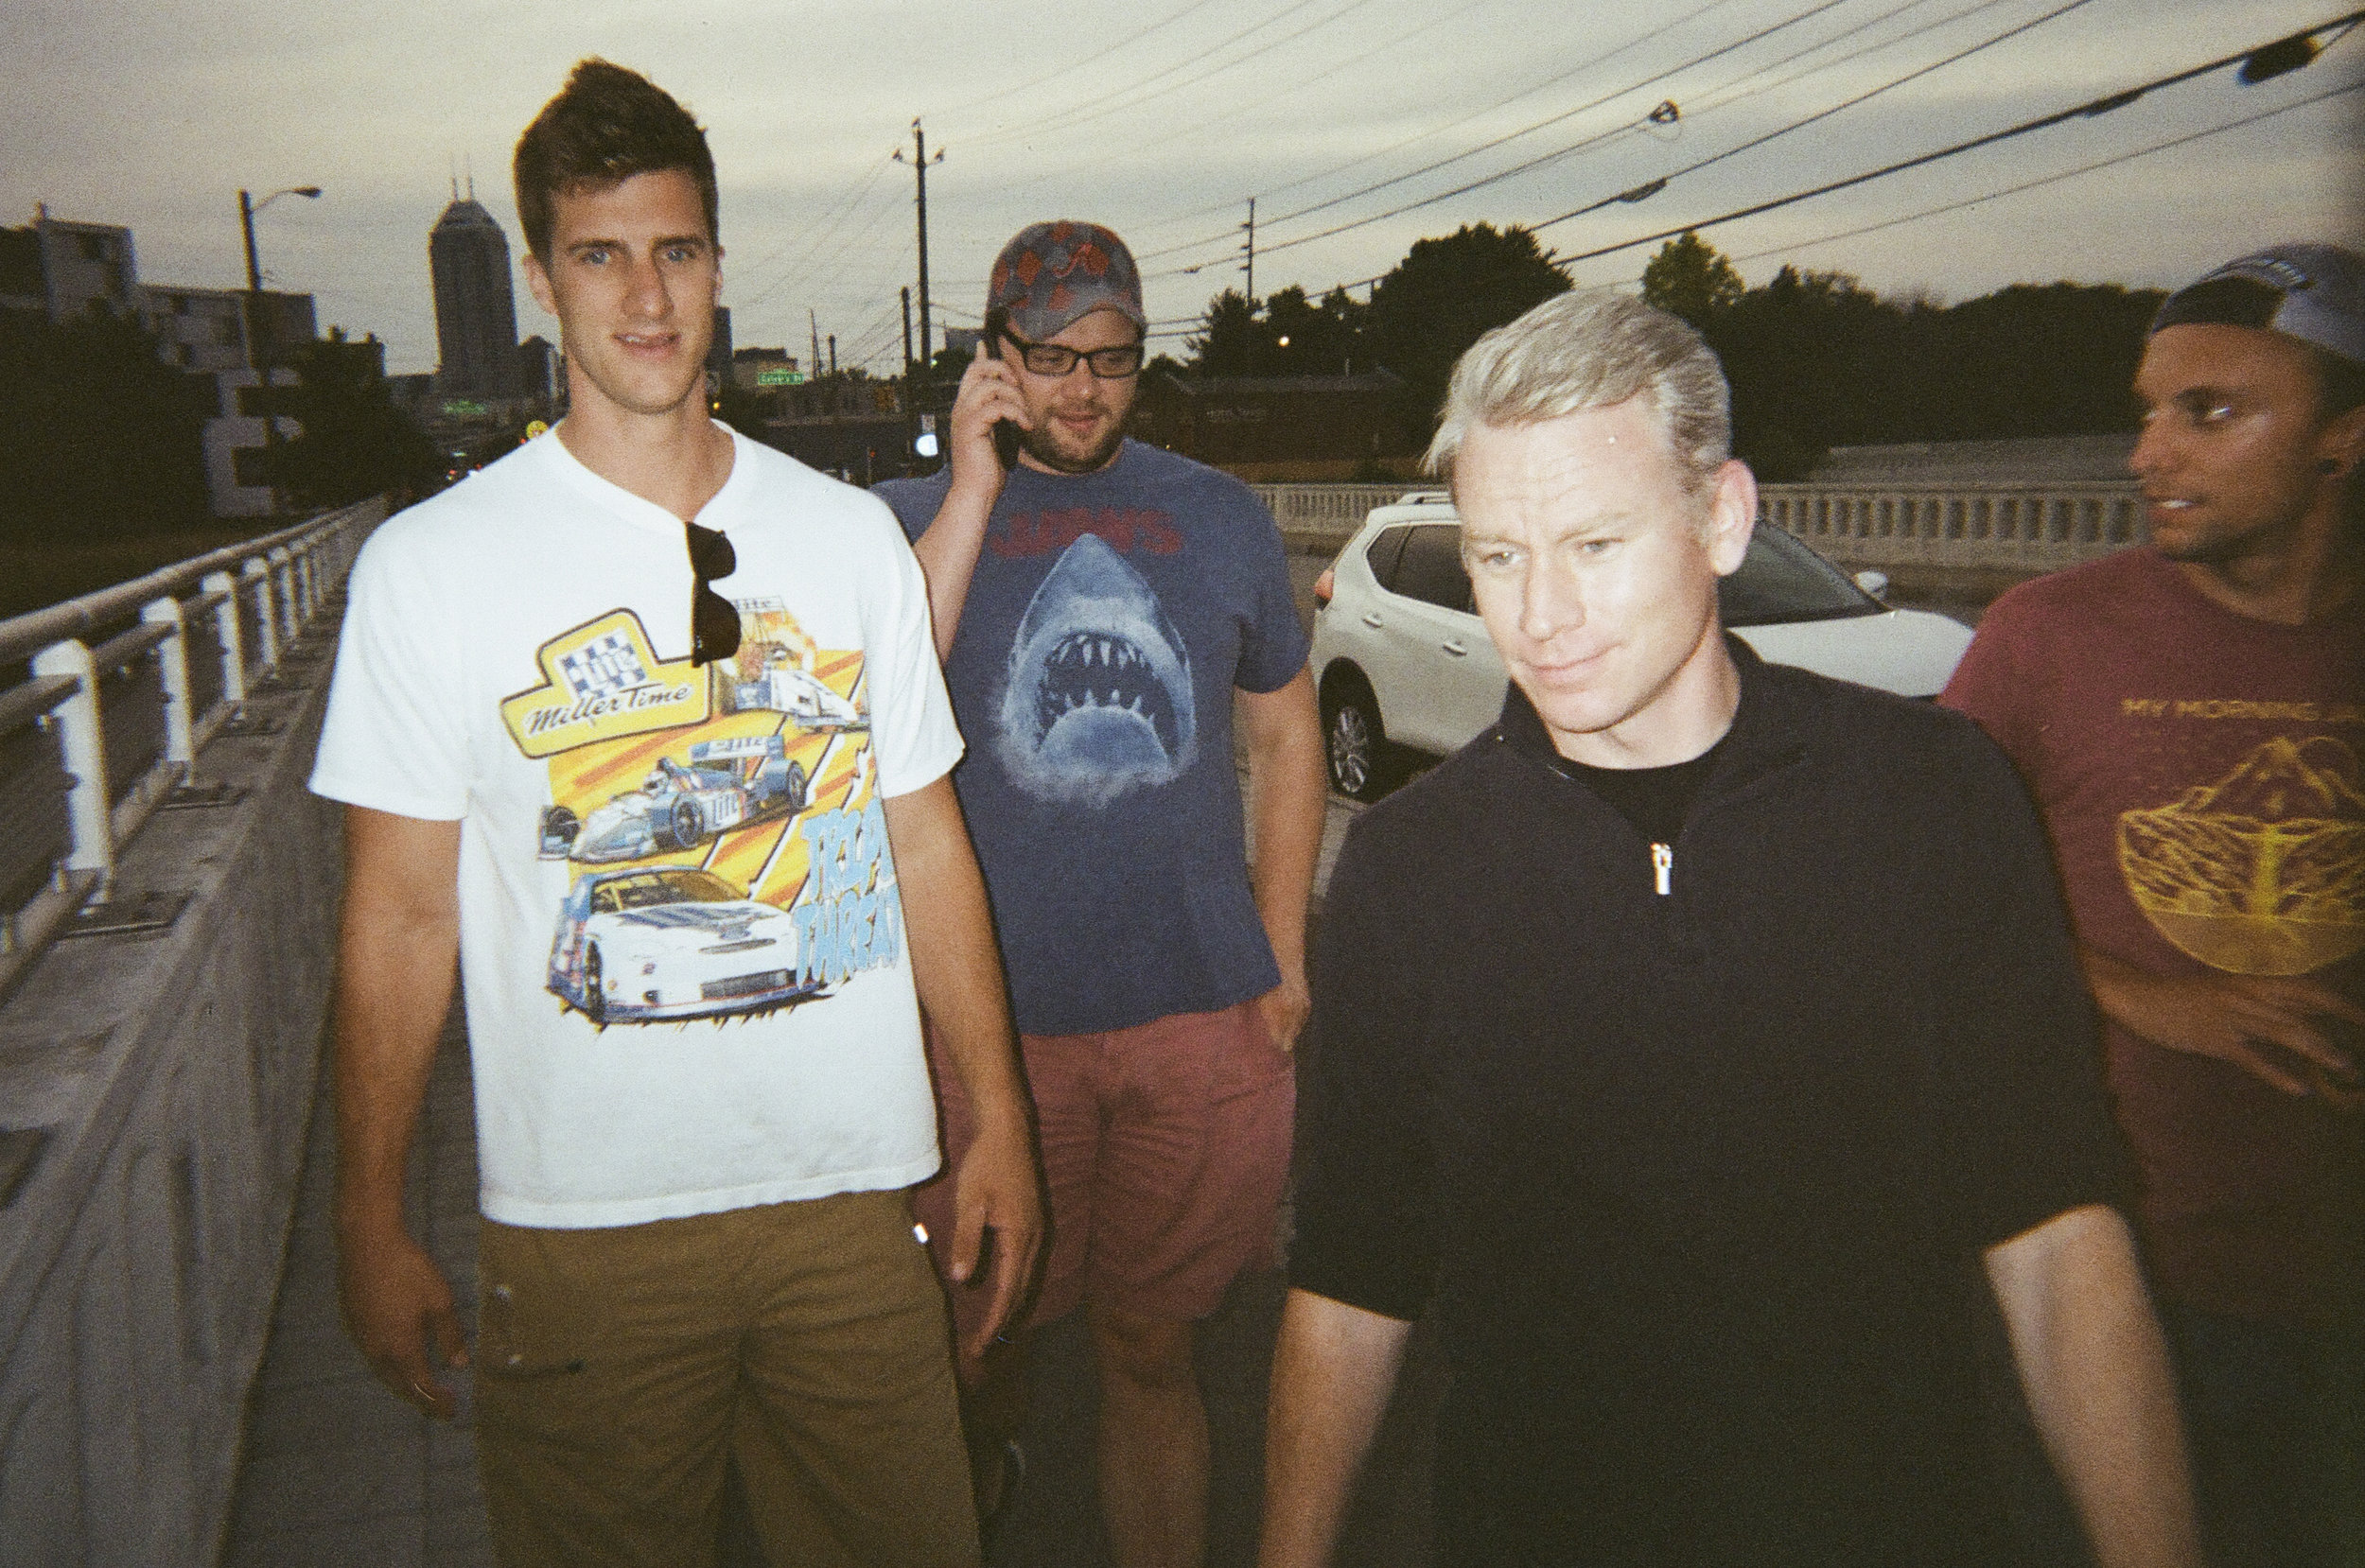 The Crew - Shot on Poloroid Disposable Camera - 35mm Film (Re-Loaded) - Indianapolis, IN